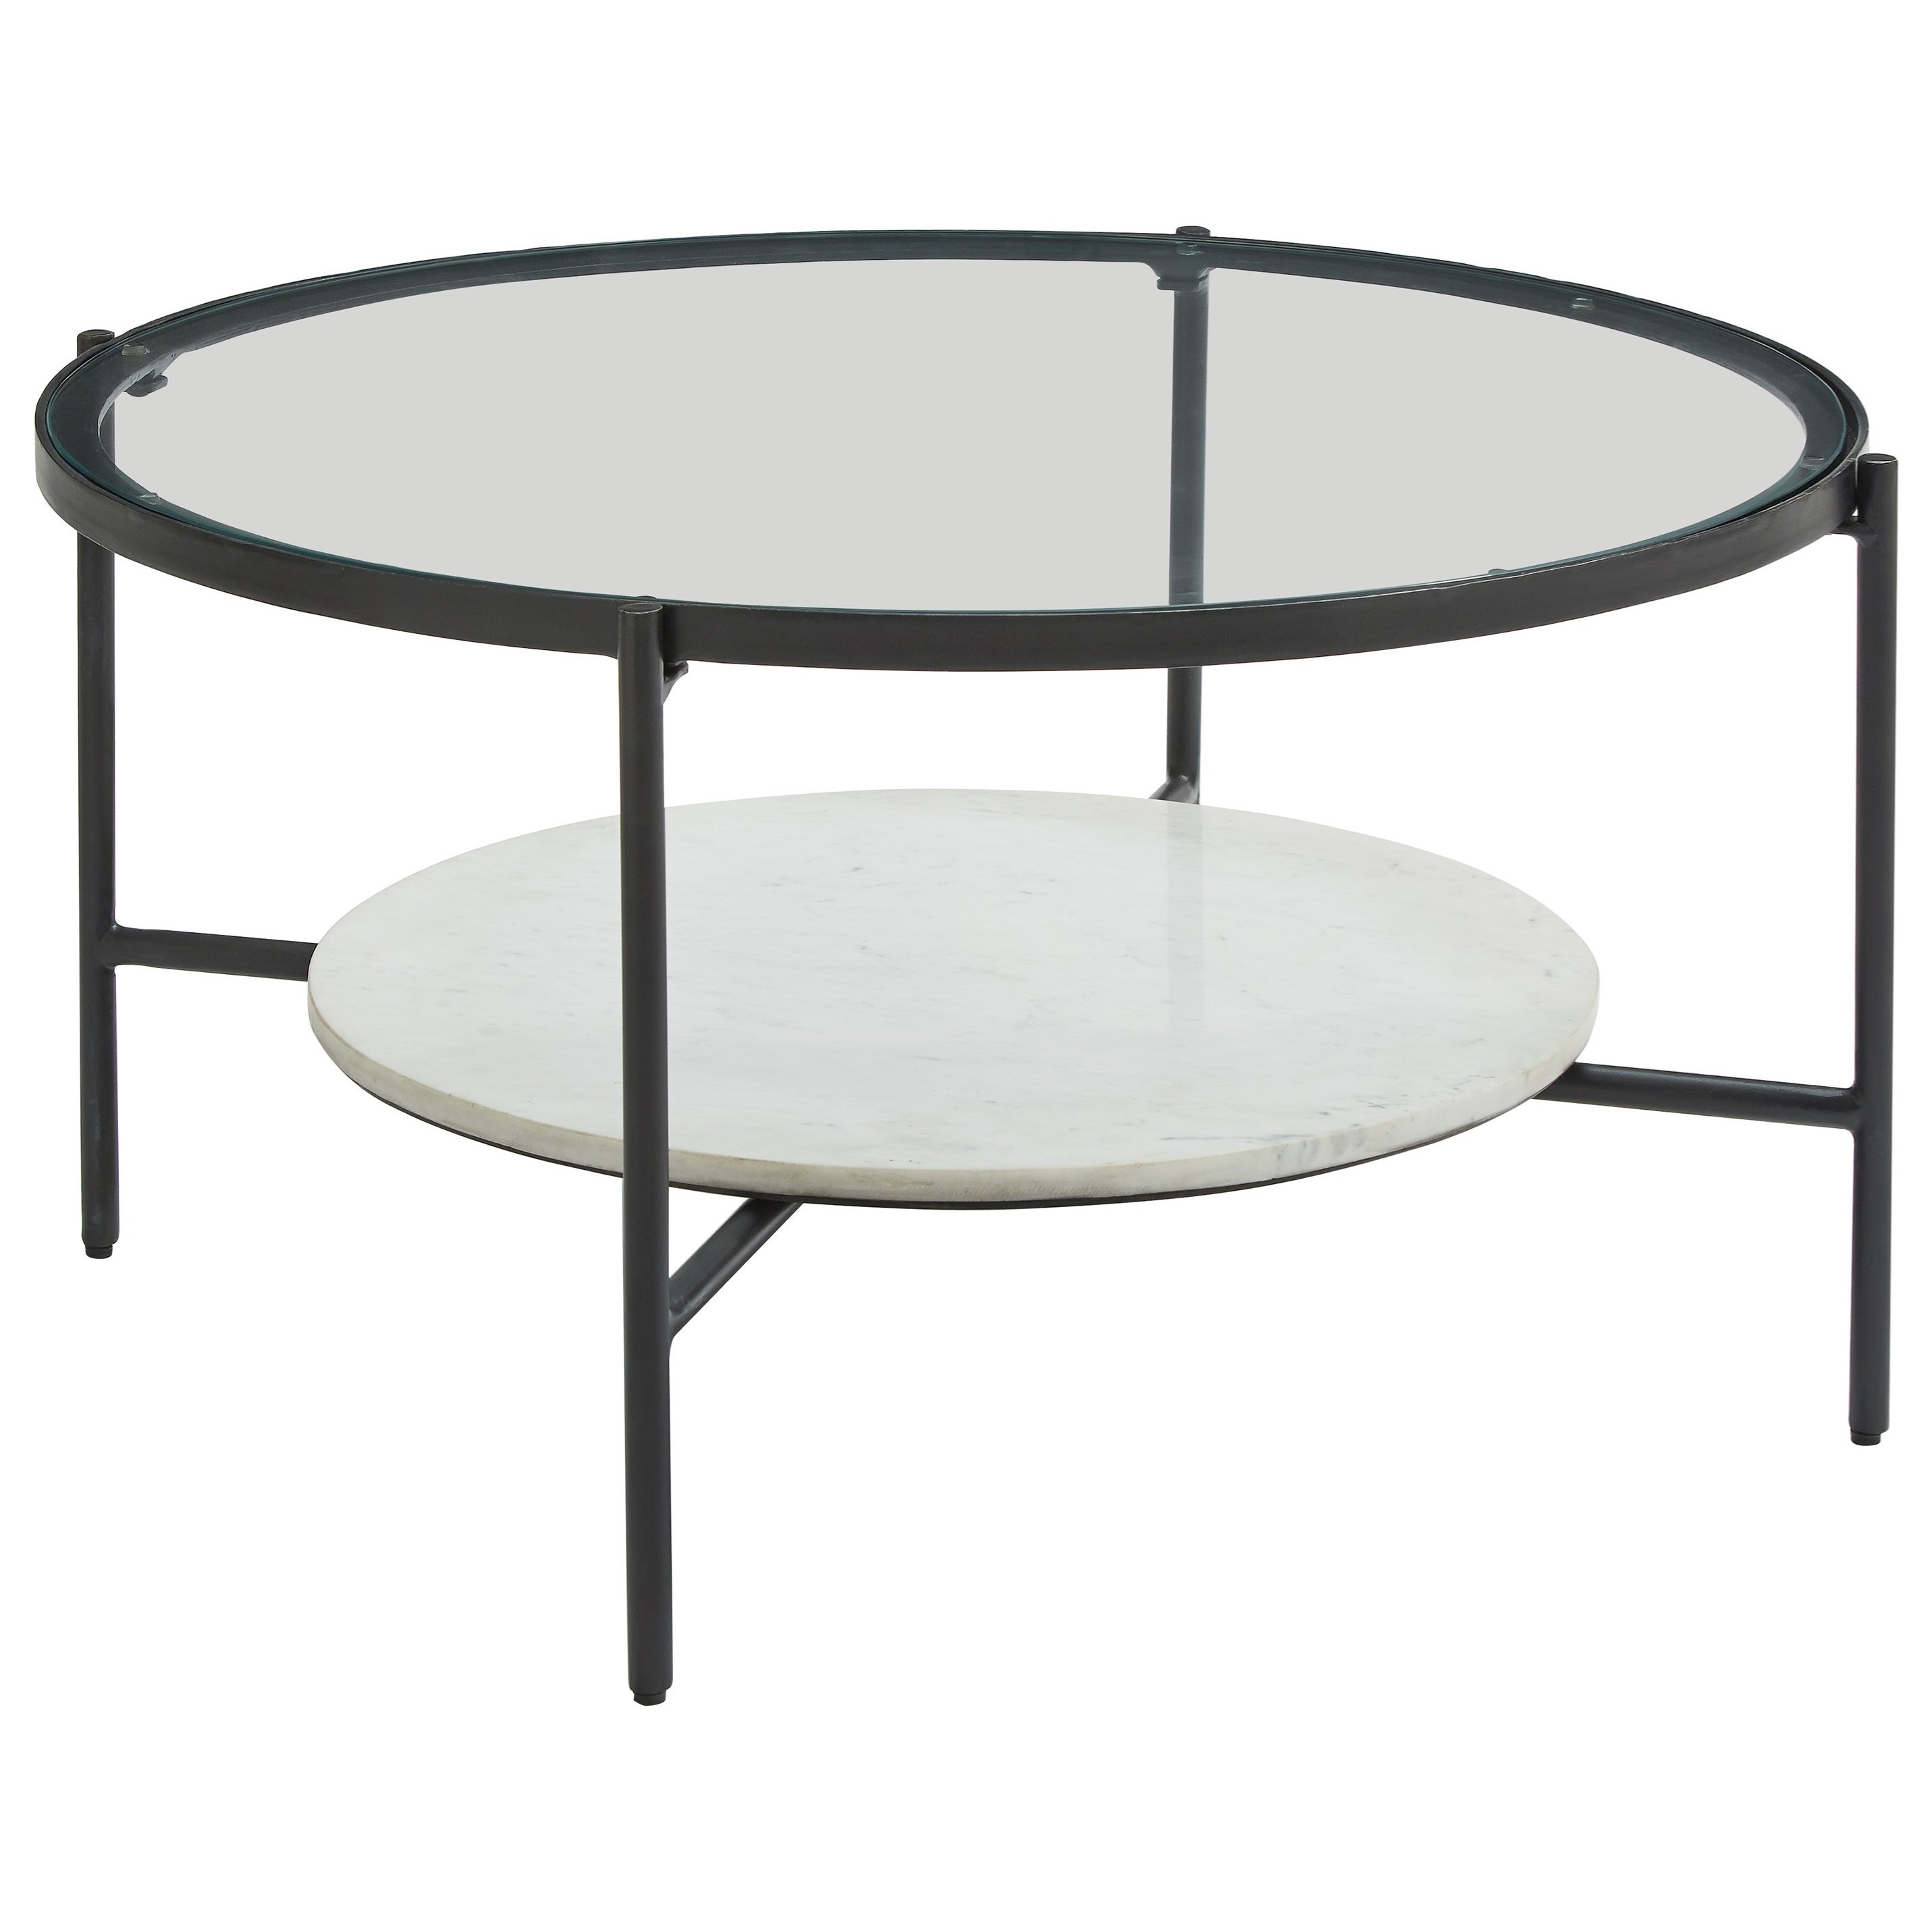 Zalany Cocktail Table by Signature Design by Ashley at HomeWorld Furniture